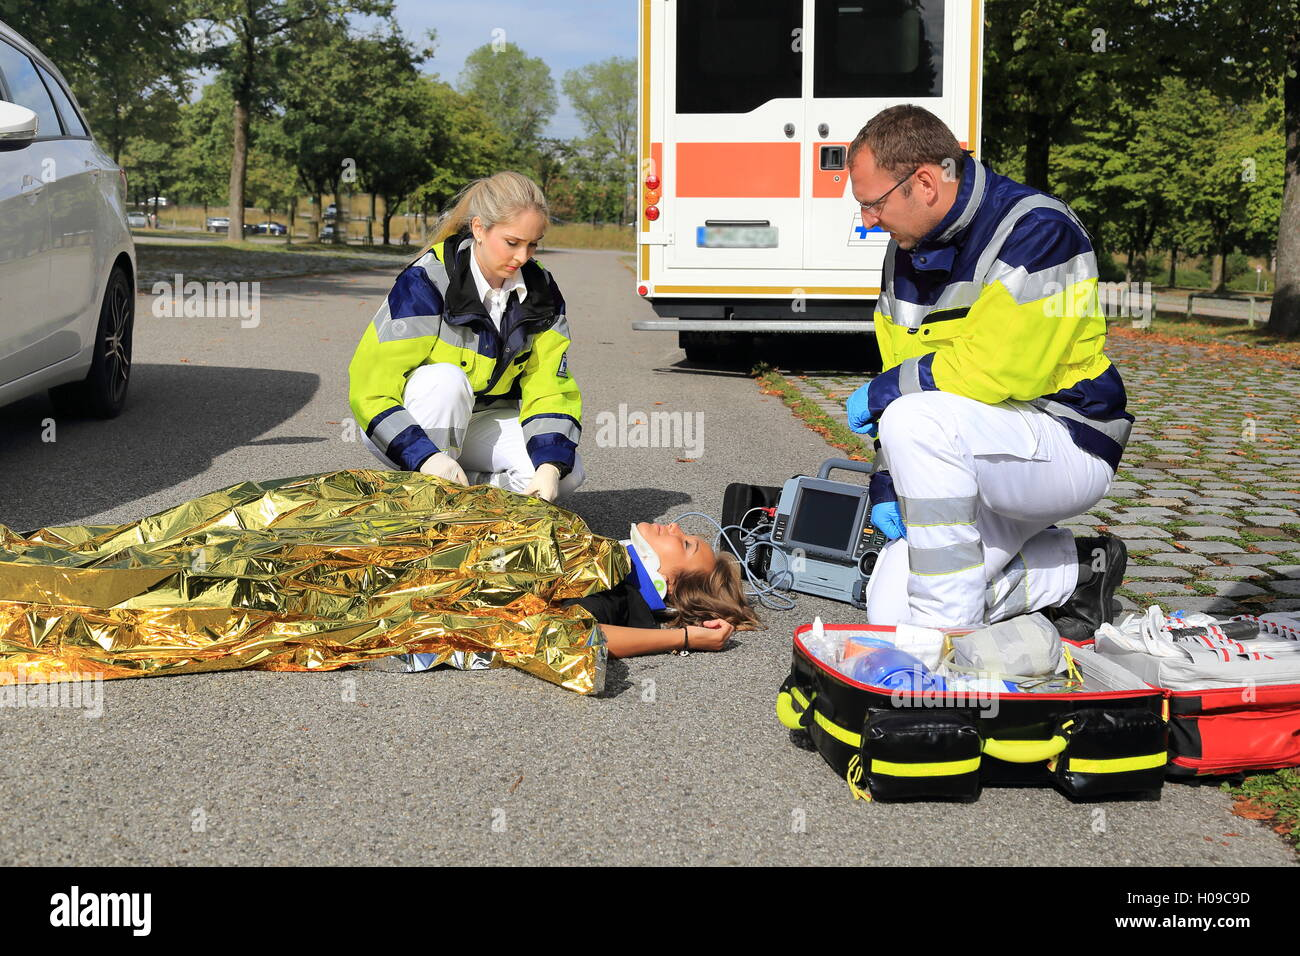 Two paramedics helping a woman after a traffic accident - Stock Image